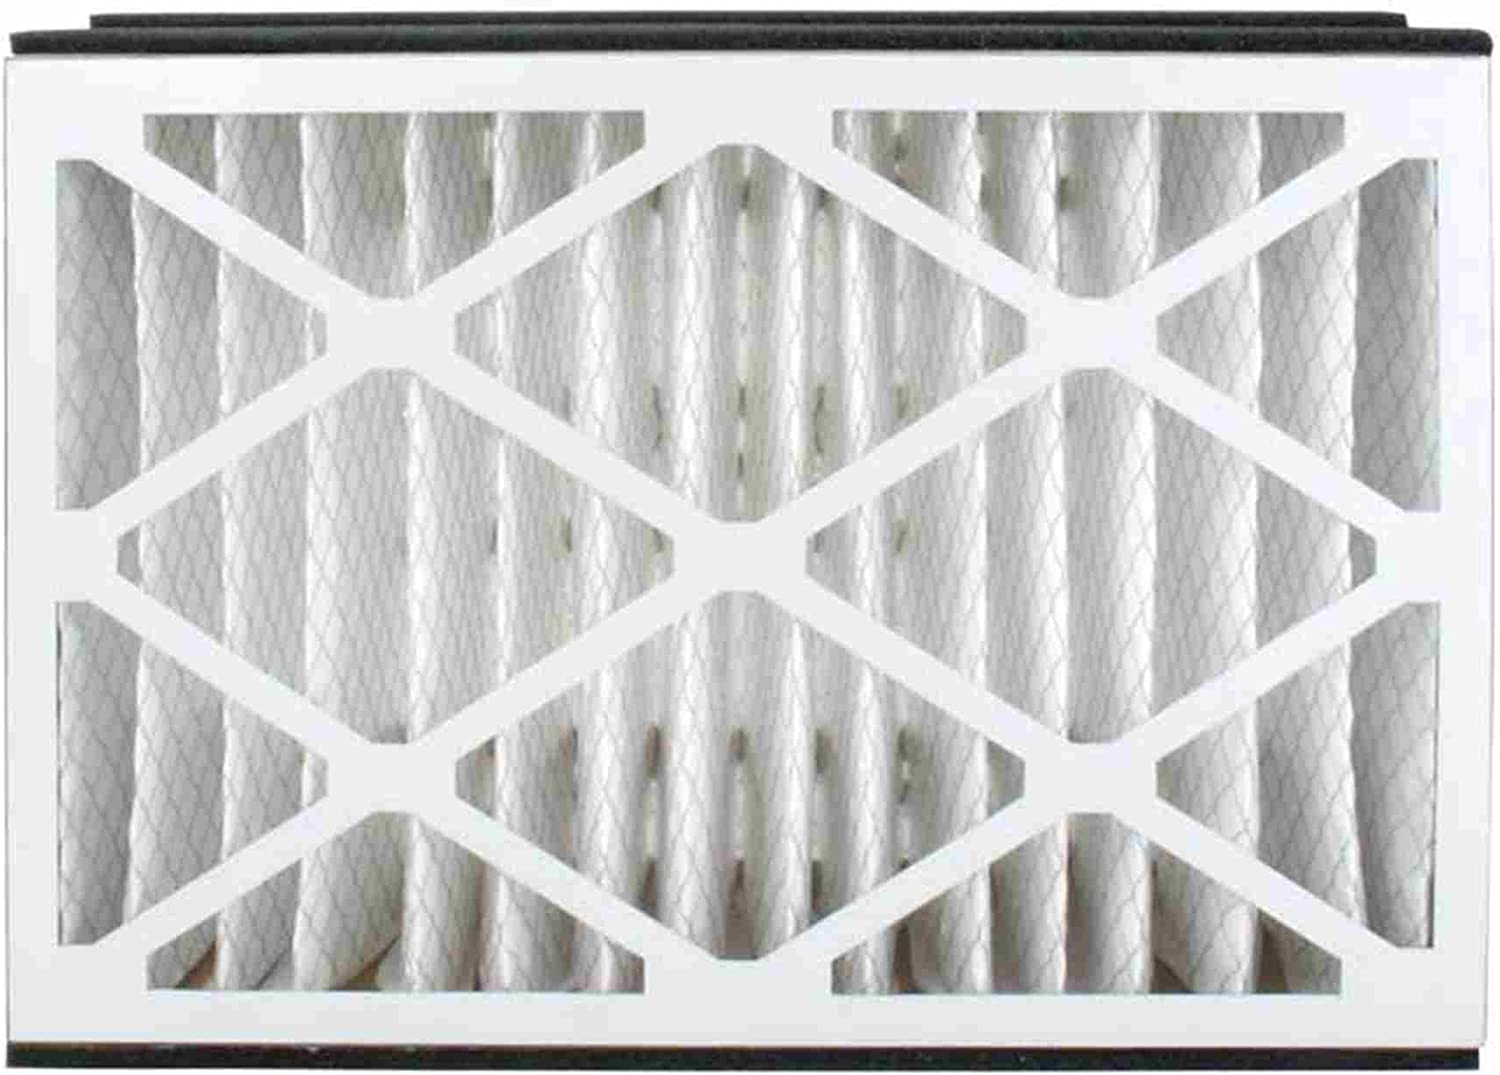 Trion Air Bear 255649-105 Pleated MERV 8 Furnace Filter Cleaner 16x25x5-3 Pack